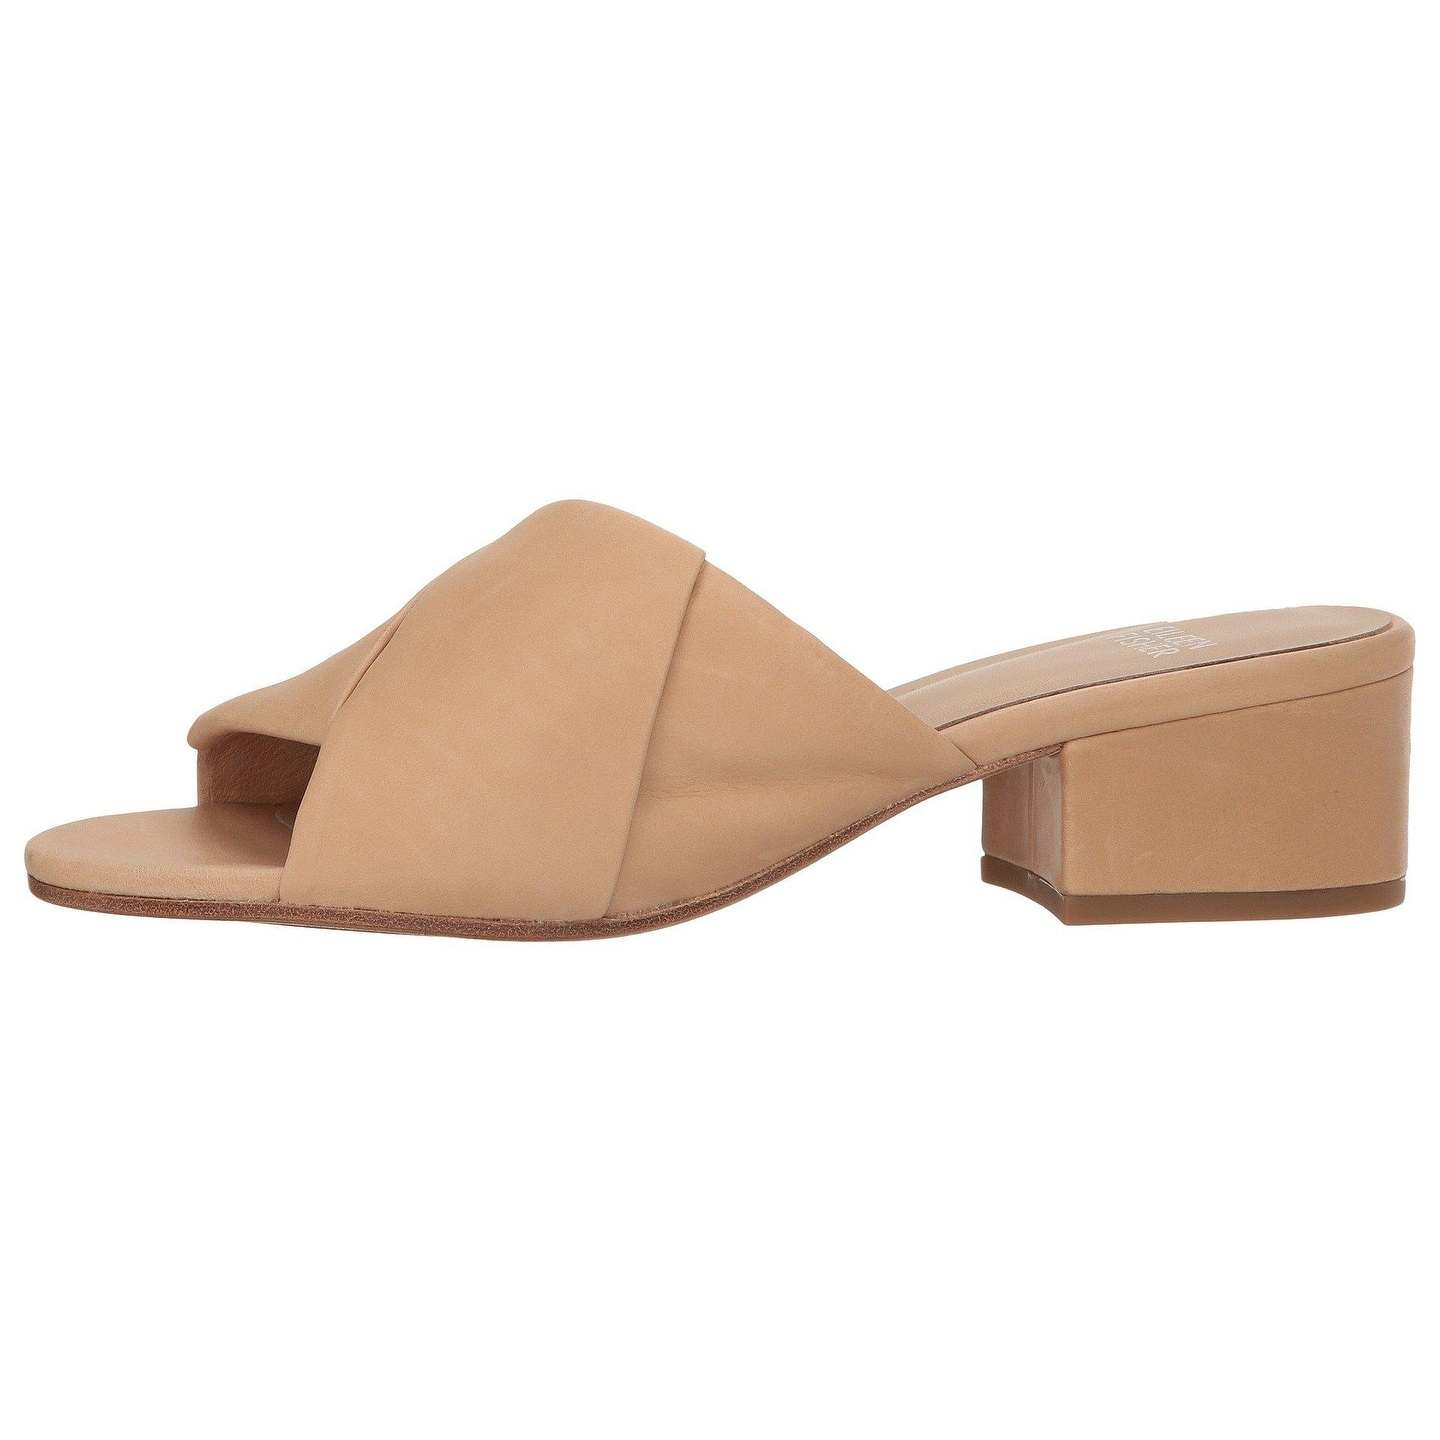 34141e676bef Eileen Fisher Shoes